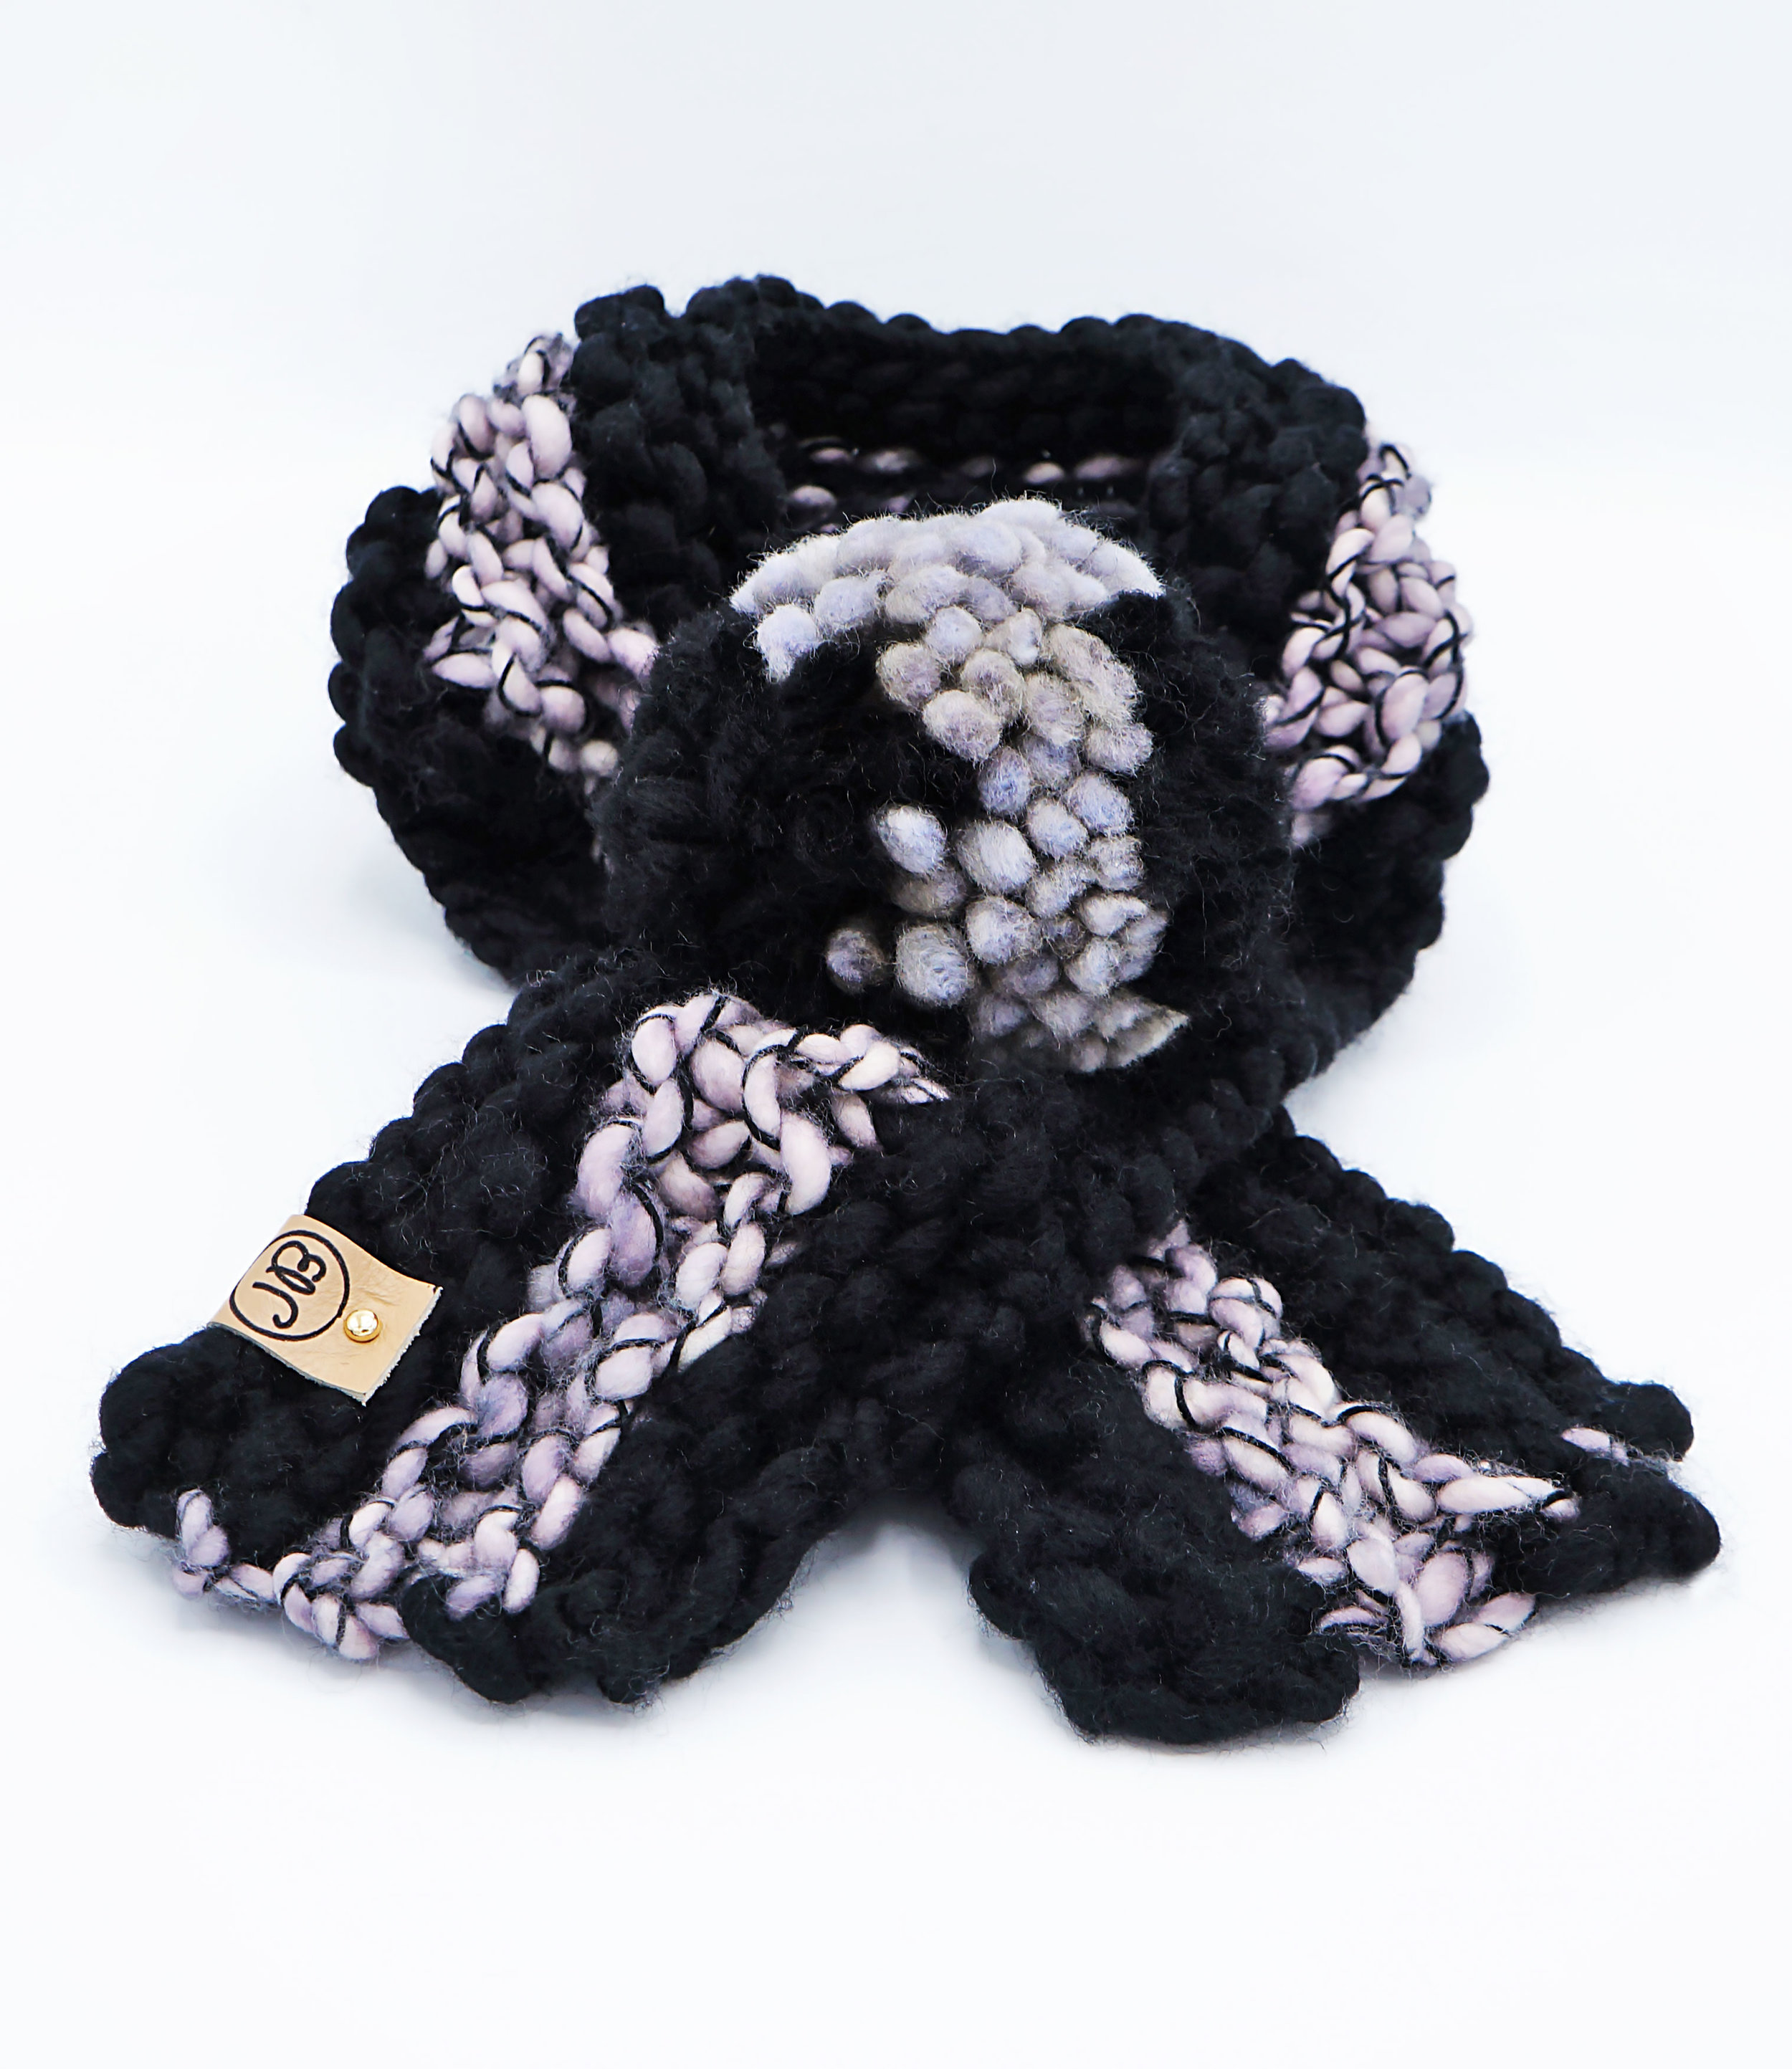 Puppy Scarf   Black & Pearl   Large $55